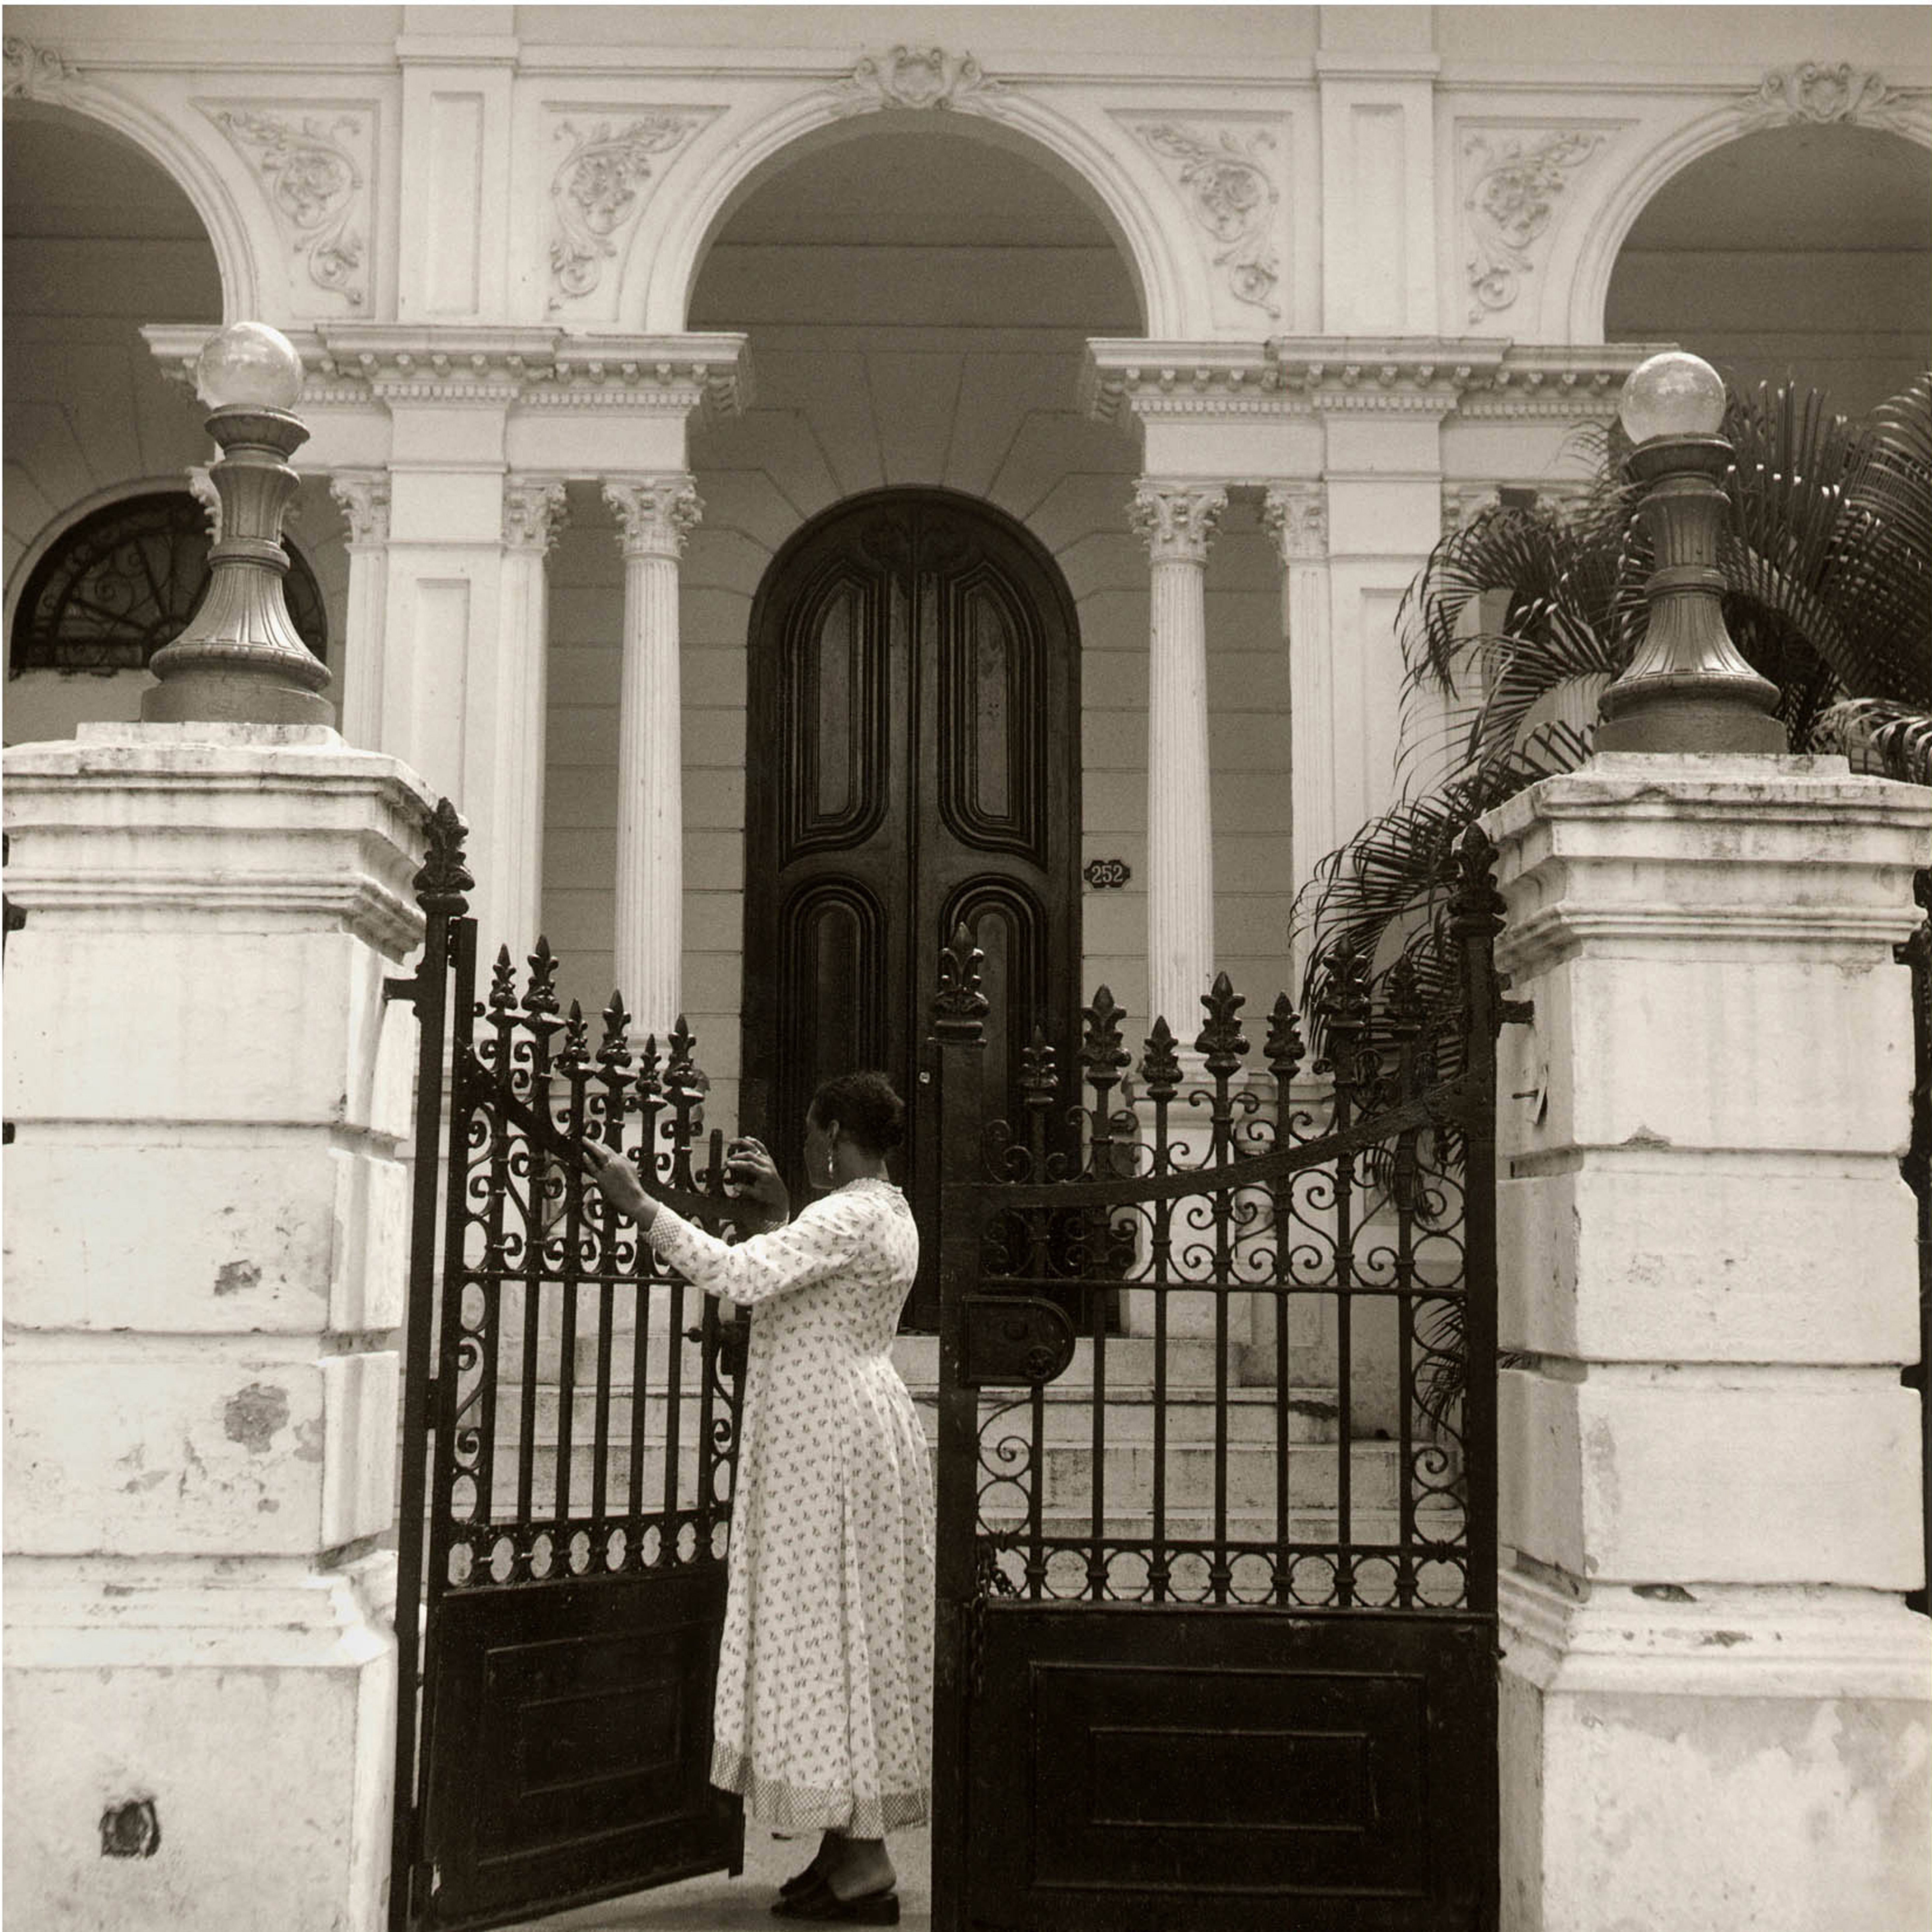 Galerie Barbara Thumm \ Carrie Mae Weems: Woman at Gate (CMW-02-009) \ Woman at Gate (2002)